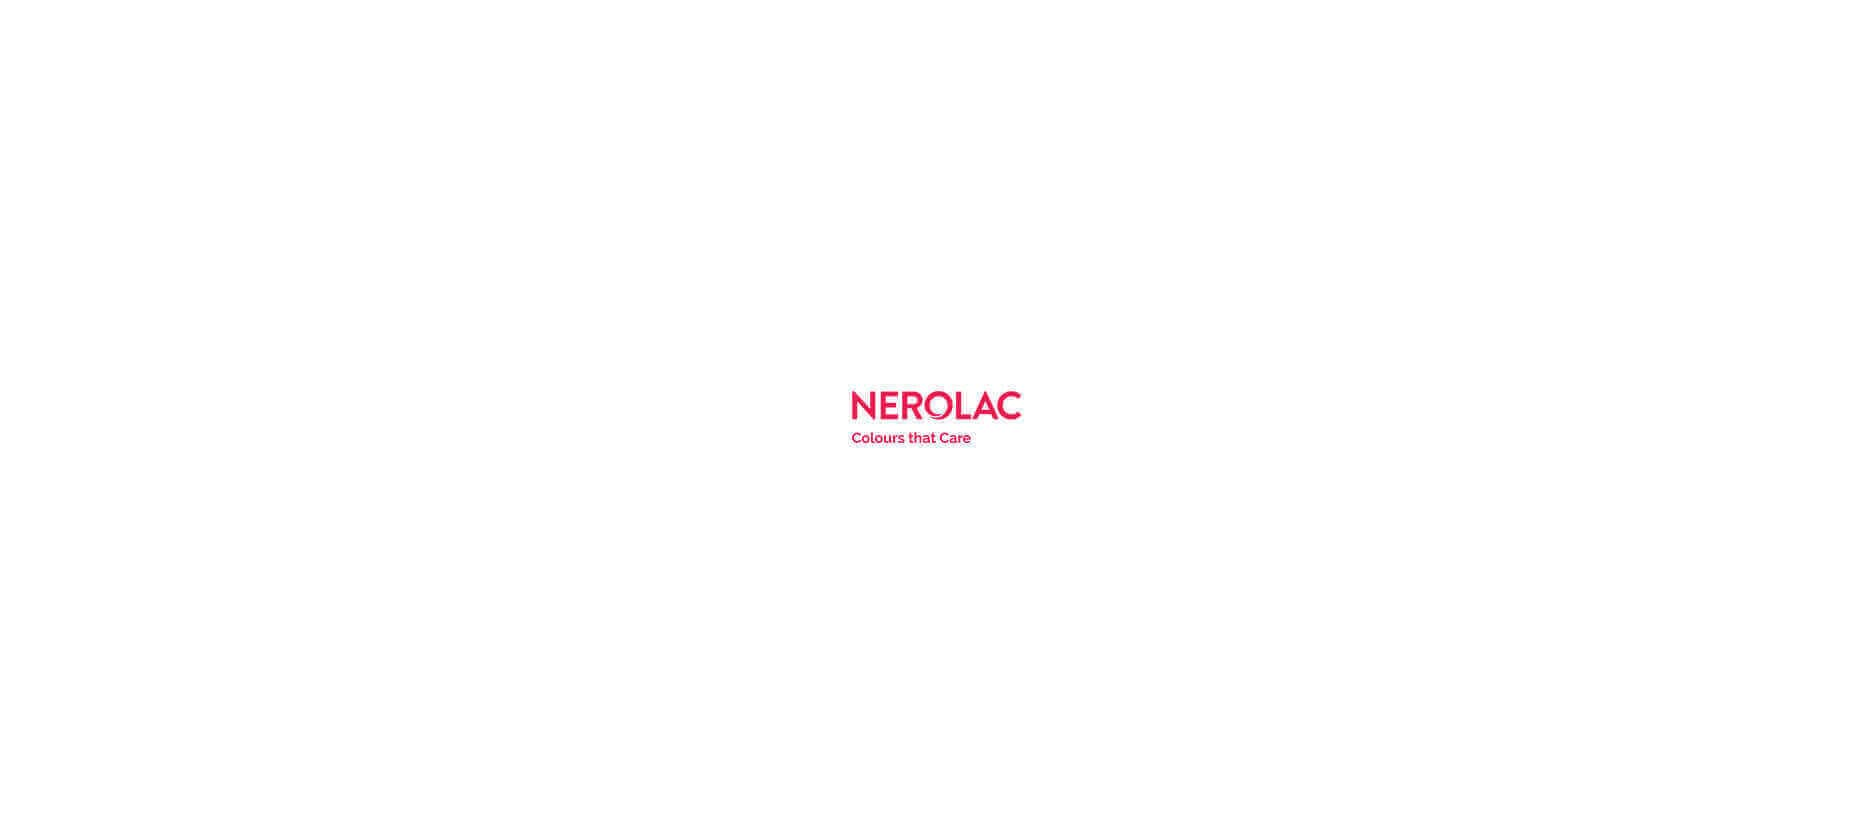 Nerolac Votes for Stunning Homes for All!